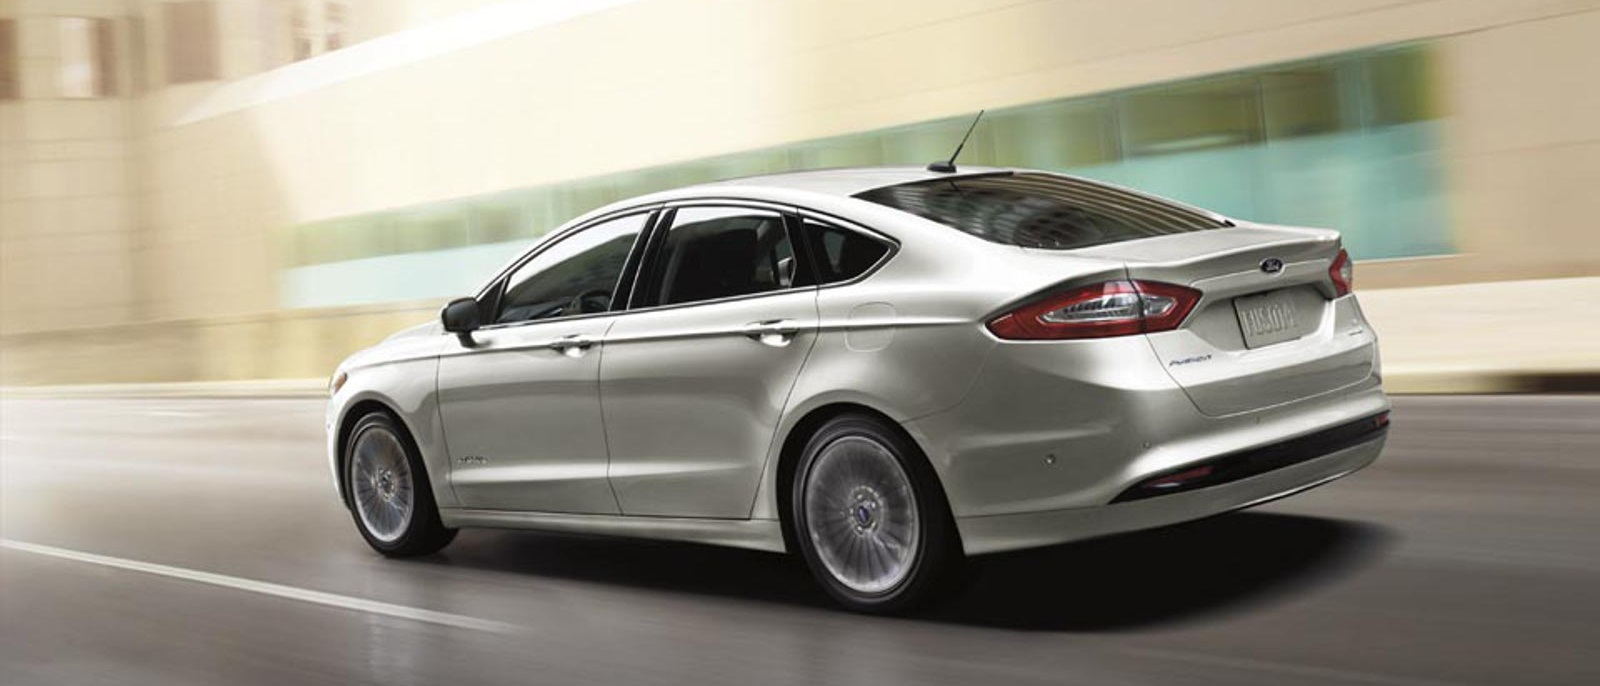 the 2016 ford fusion has arrived at andy mohr ford in plainfield andy mohr ford prlog. Black Bedroom Furniture Sets. Home Design Ideas